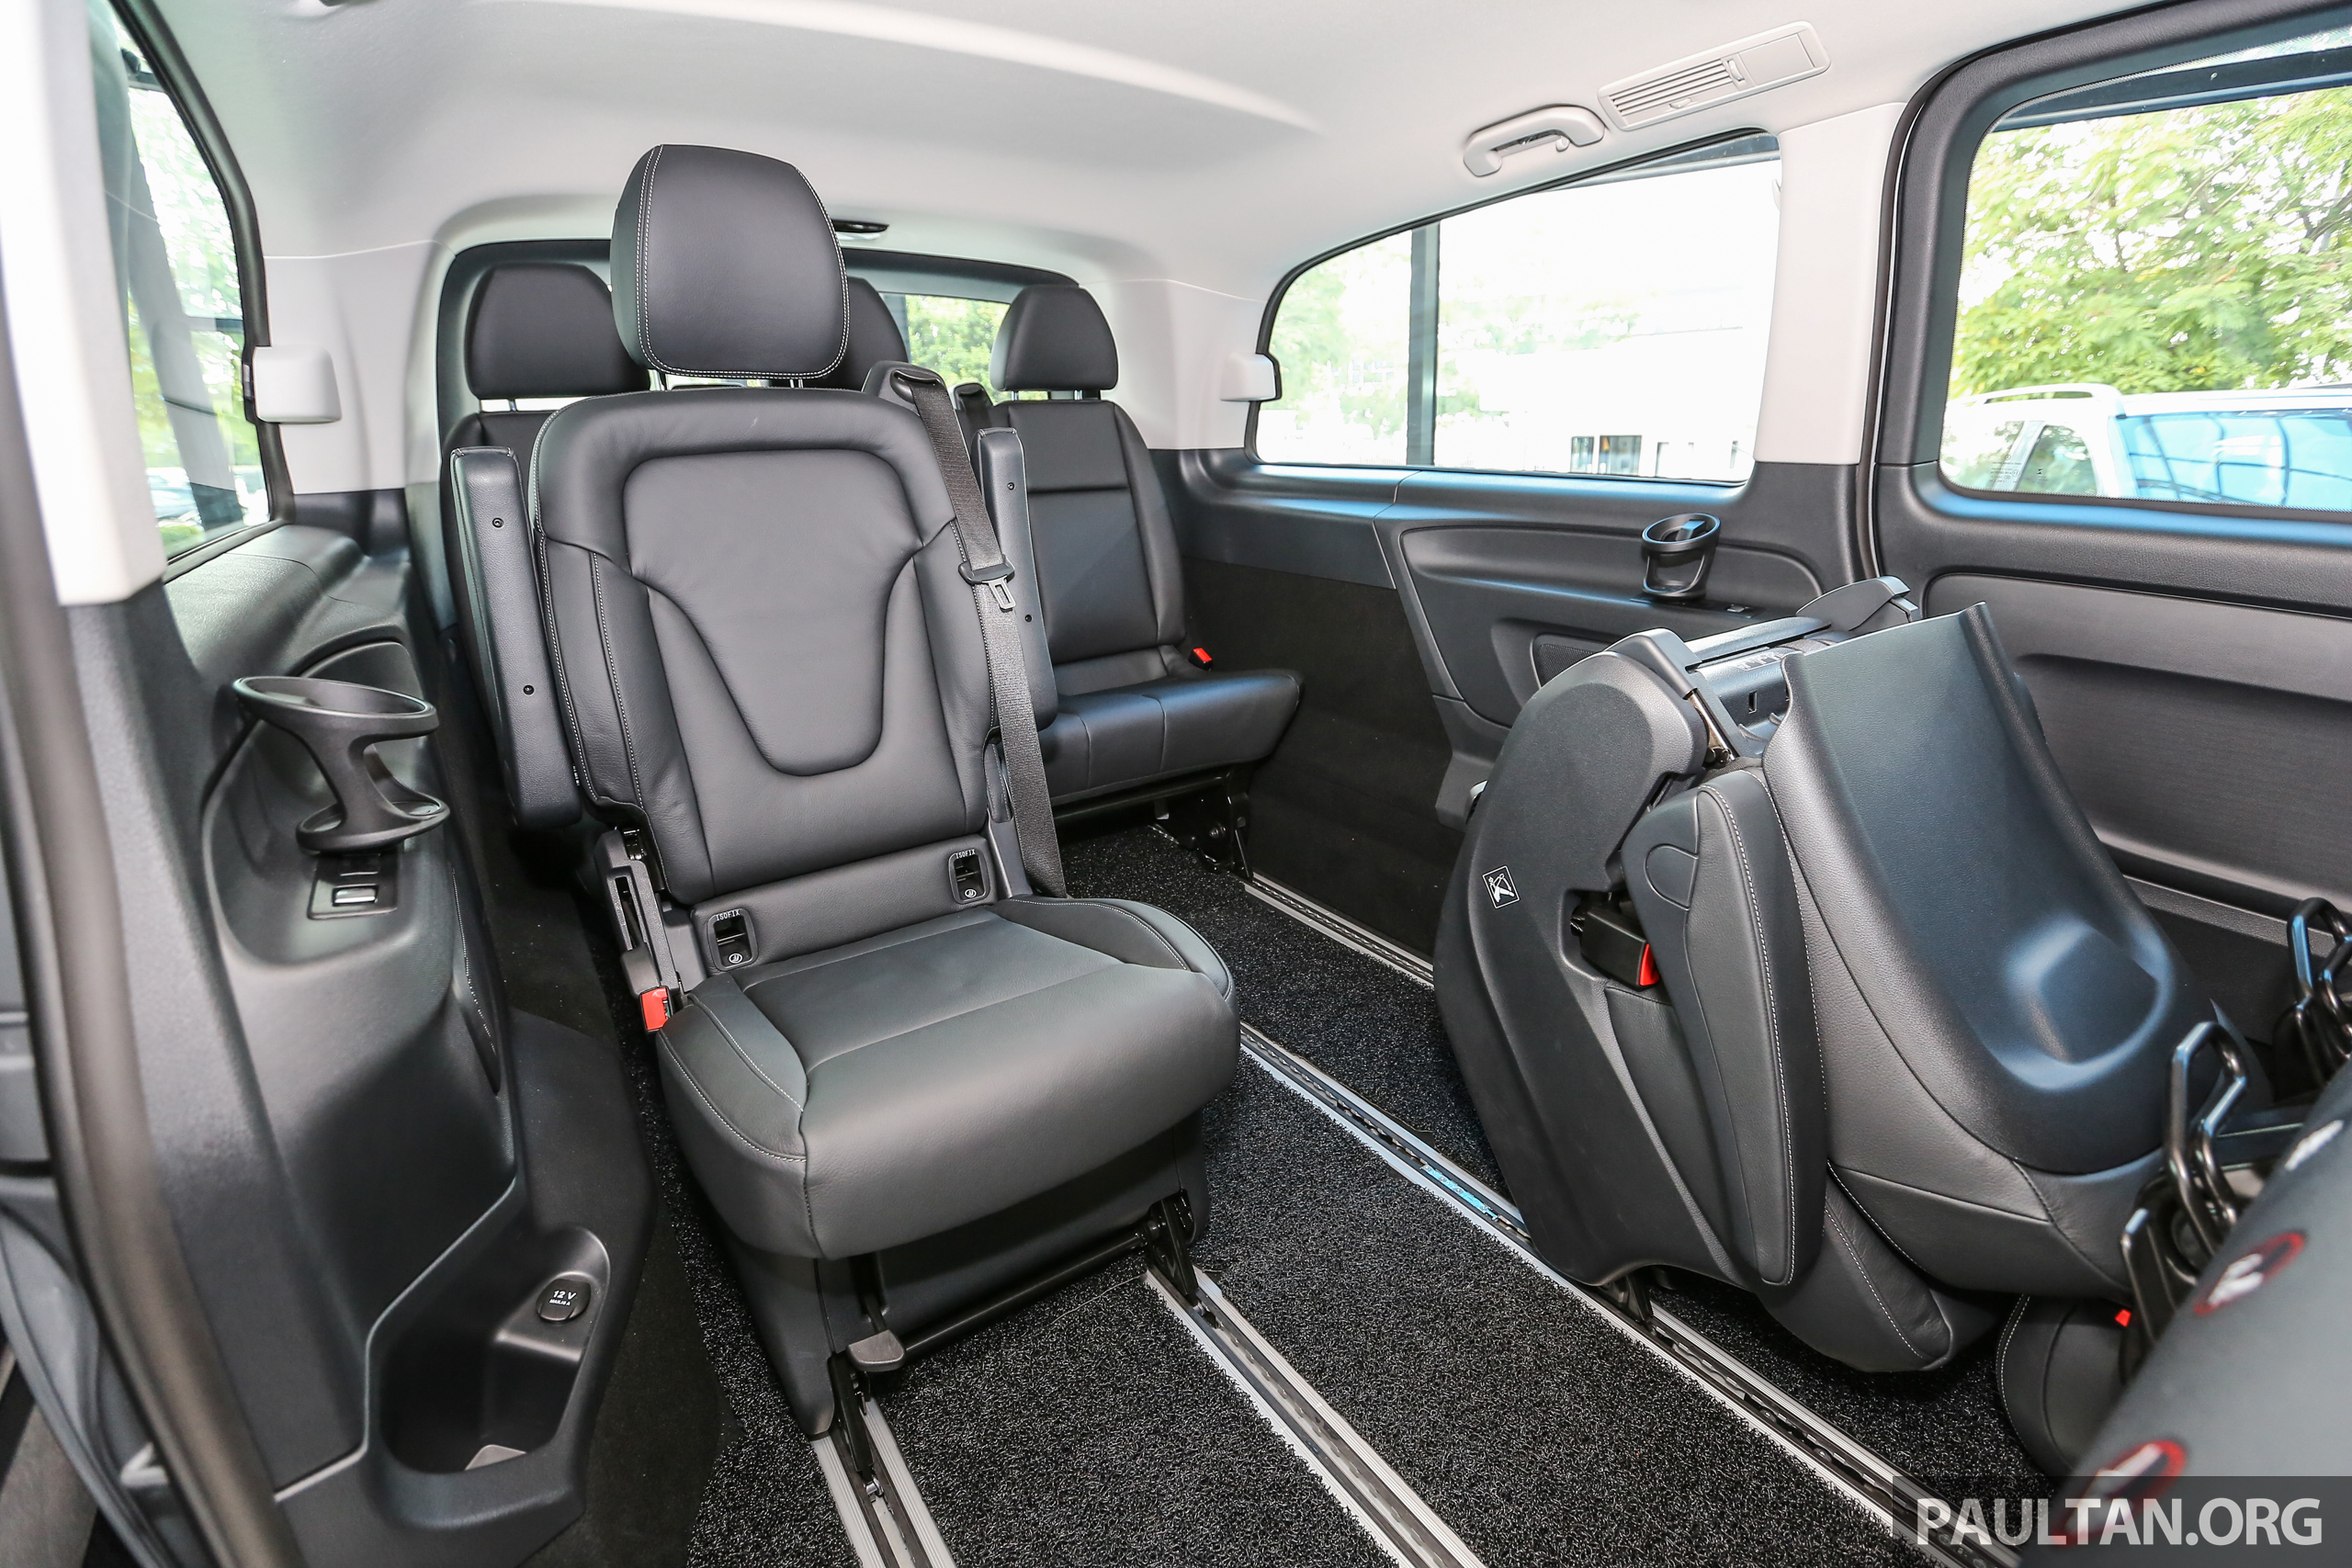 mercedes benz vito tourer now in malaysia rm287k paul tan image 515603. Black Bedroom Furniture Sets. Home Design Ideas